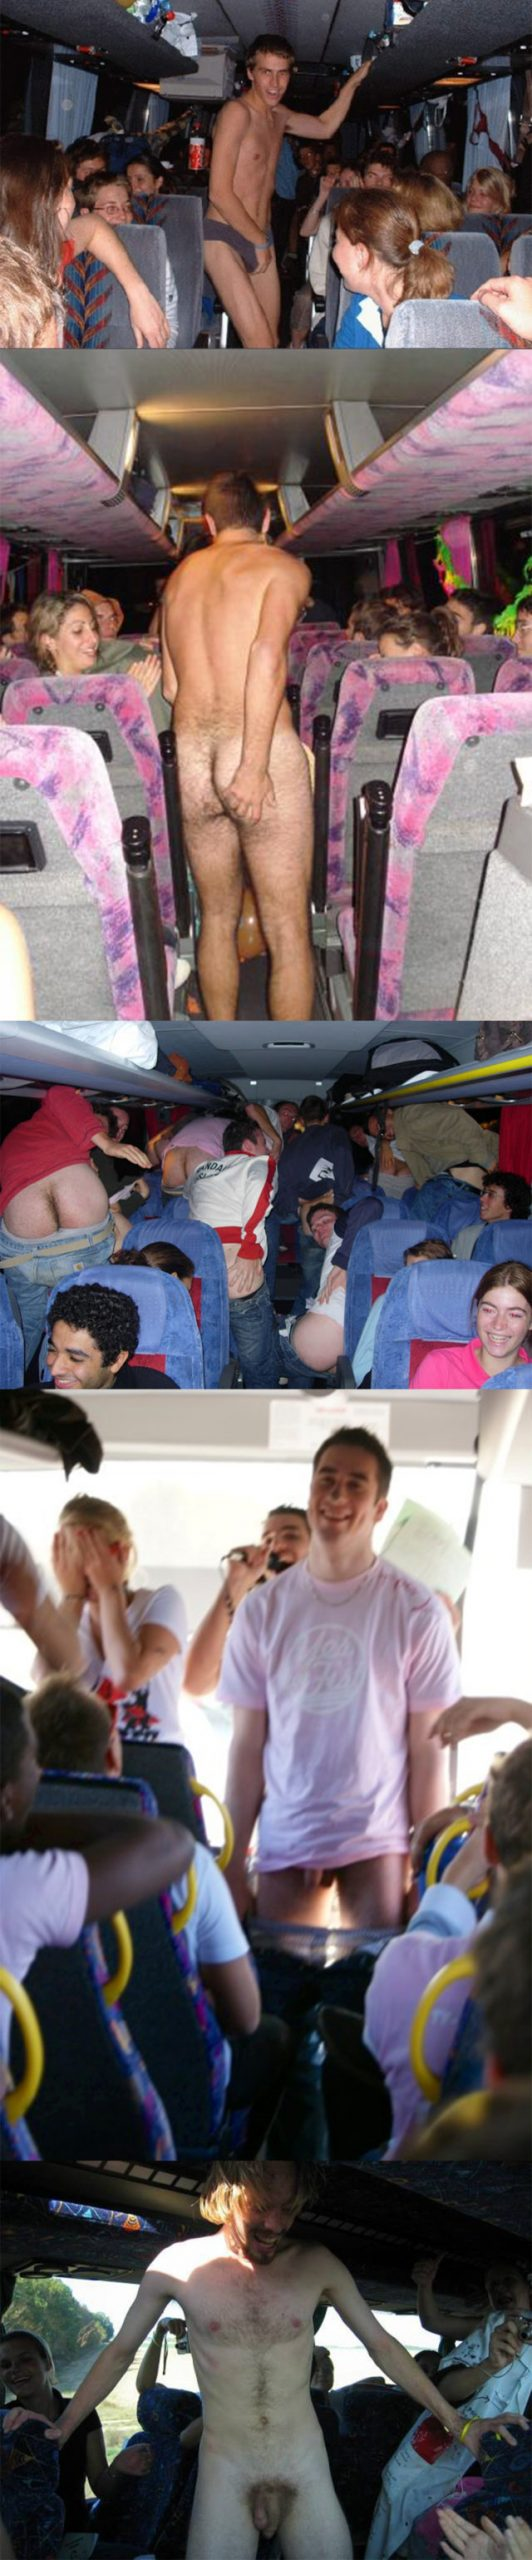 nude rugby guys on the bus